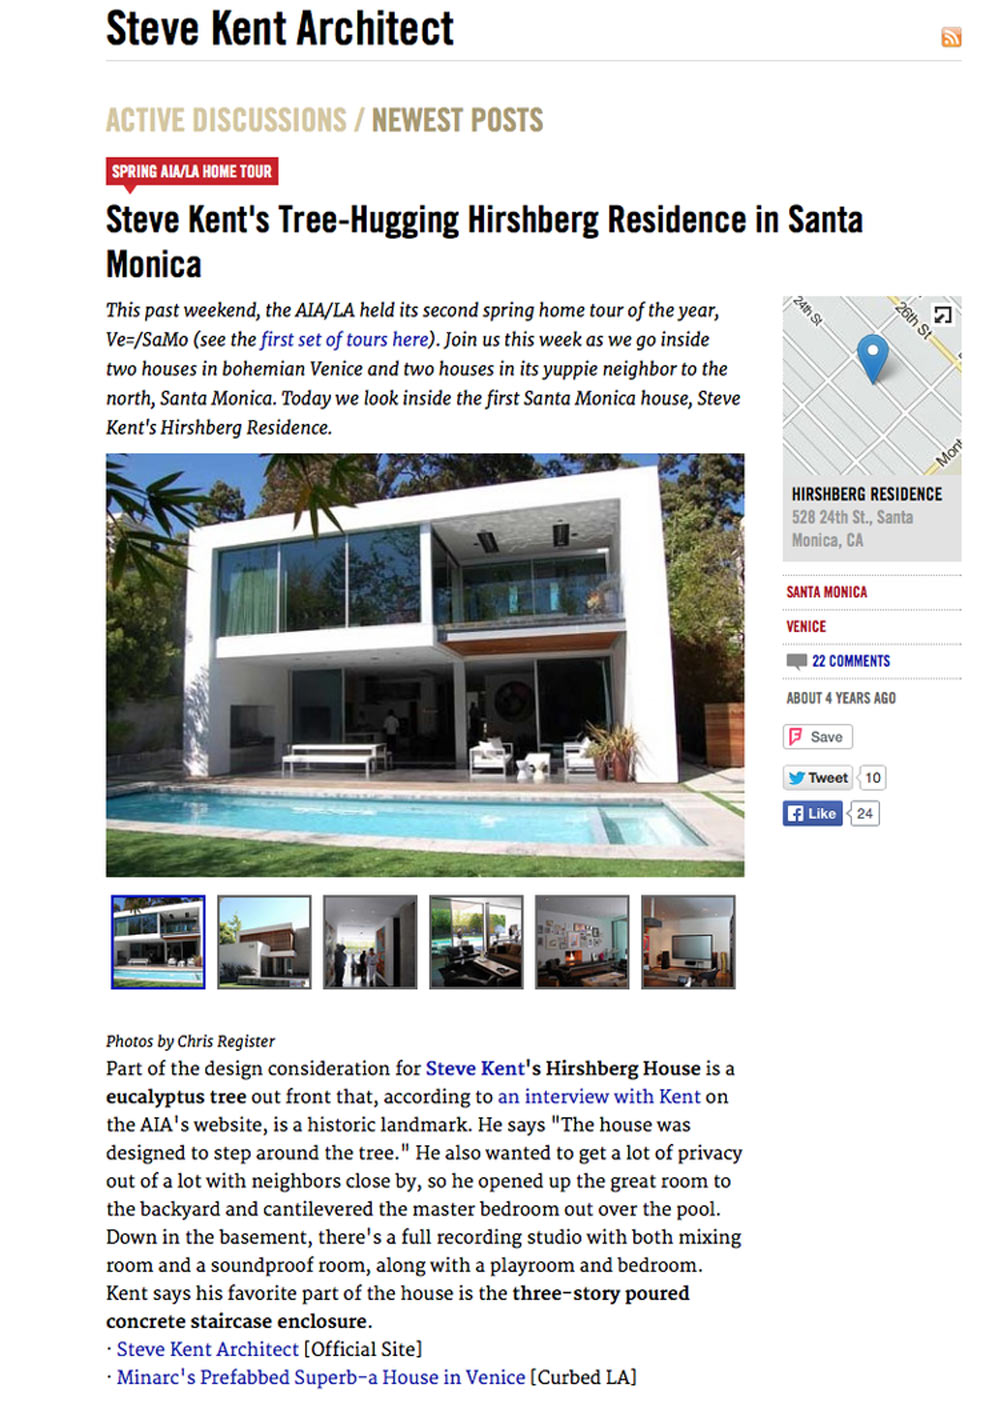 Steven-Kent-Designed-Eco-Friendly-Santa-Monica-Build